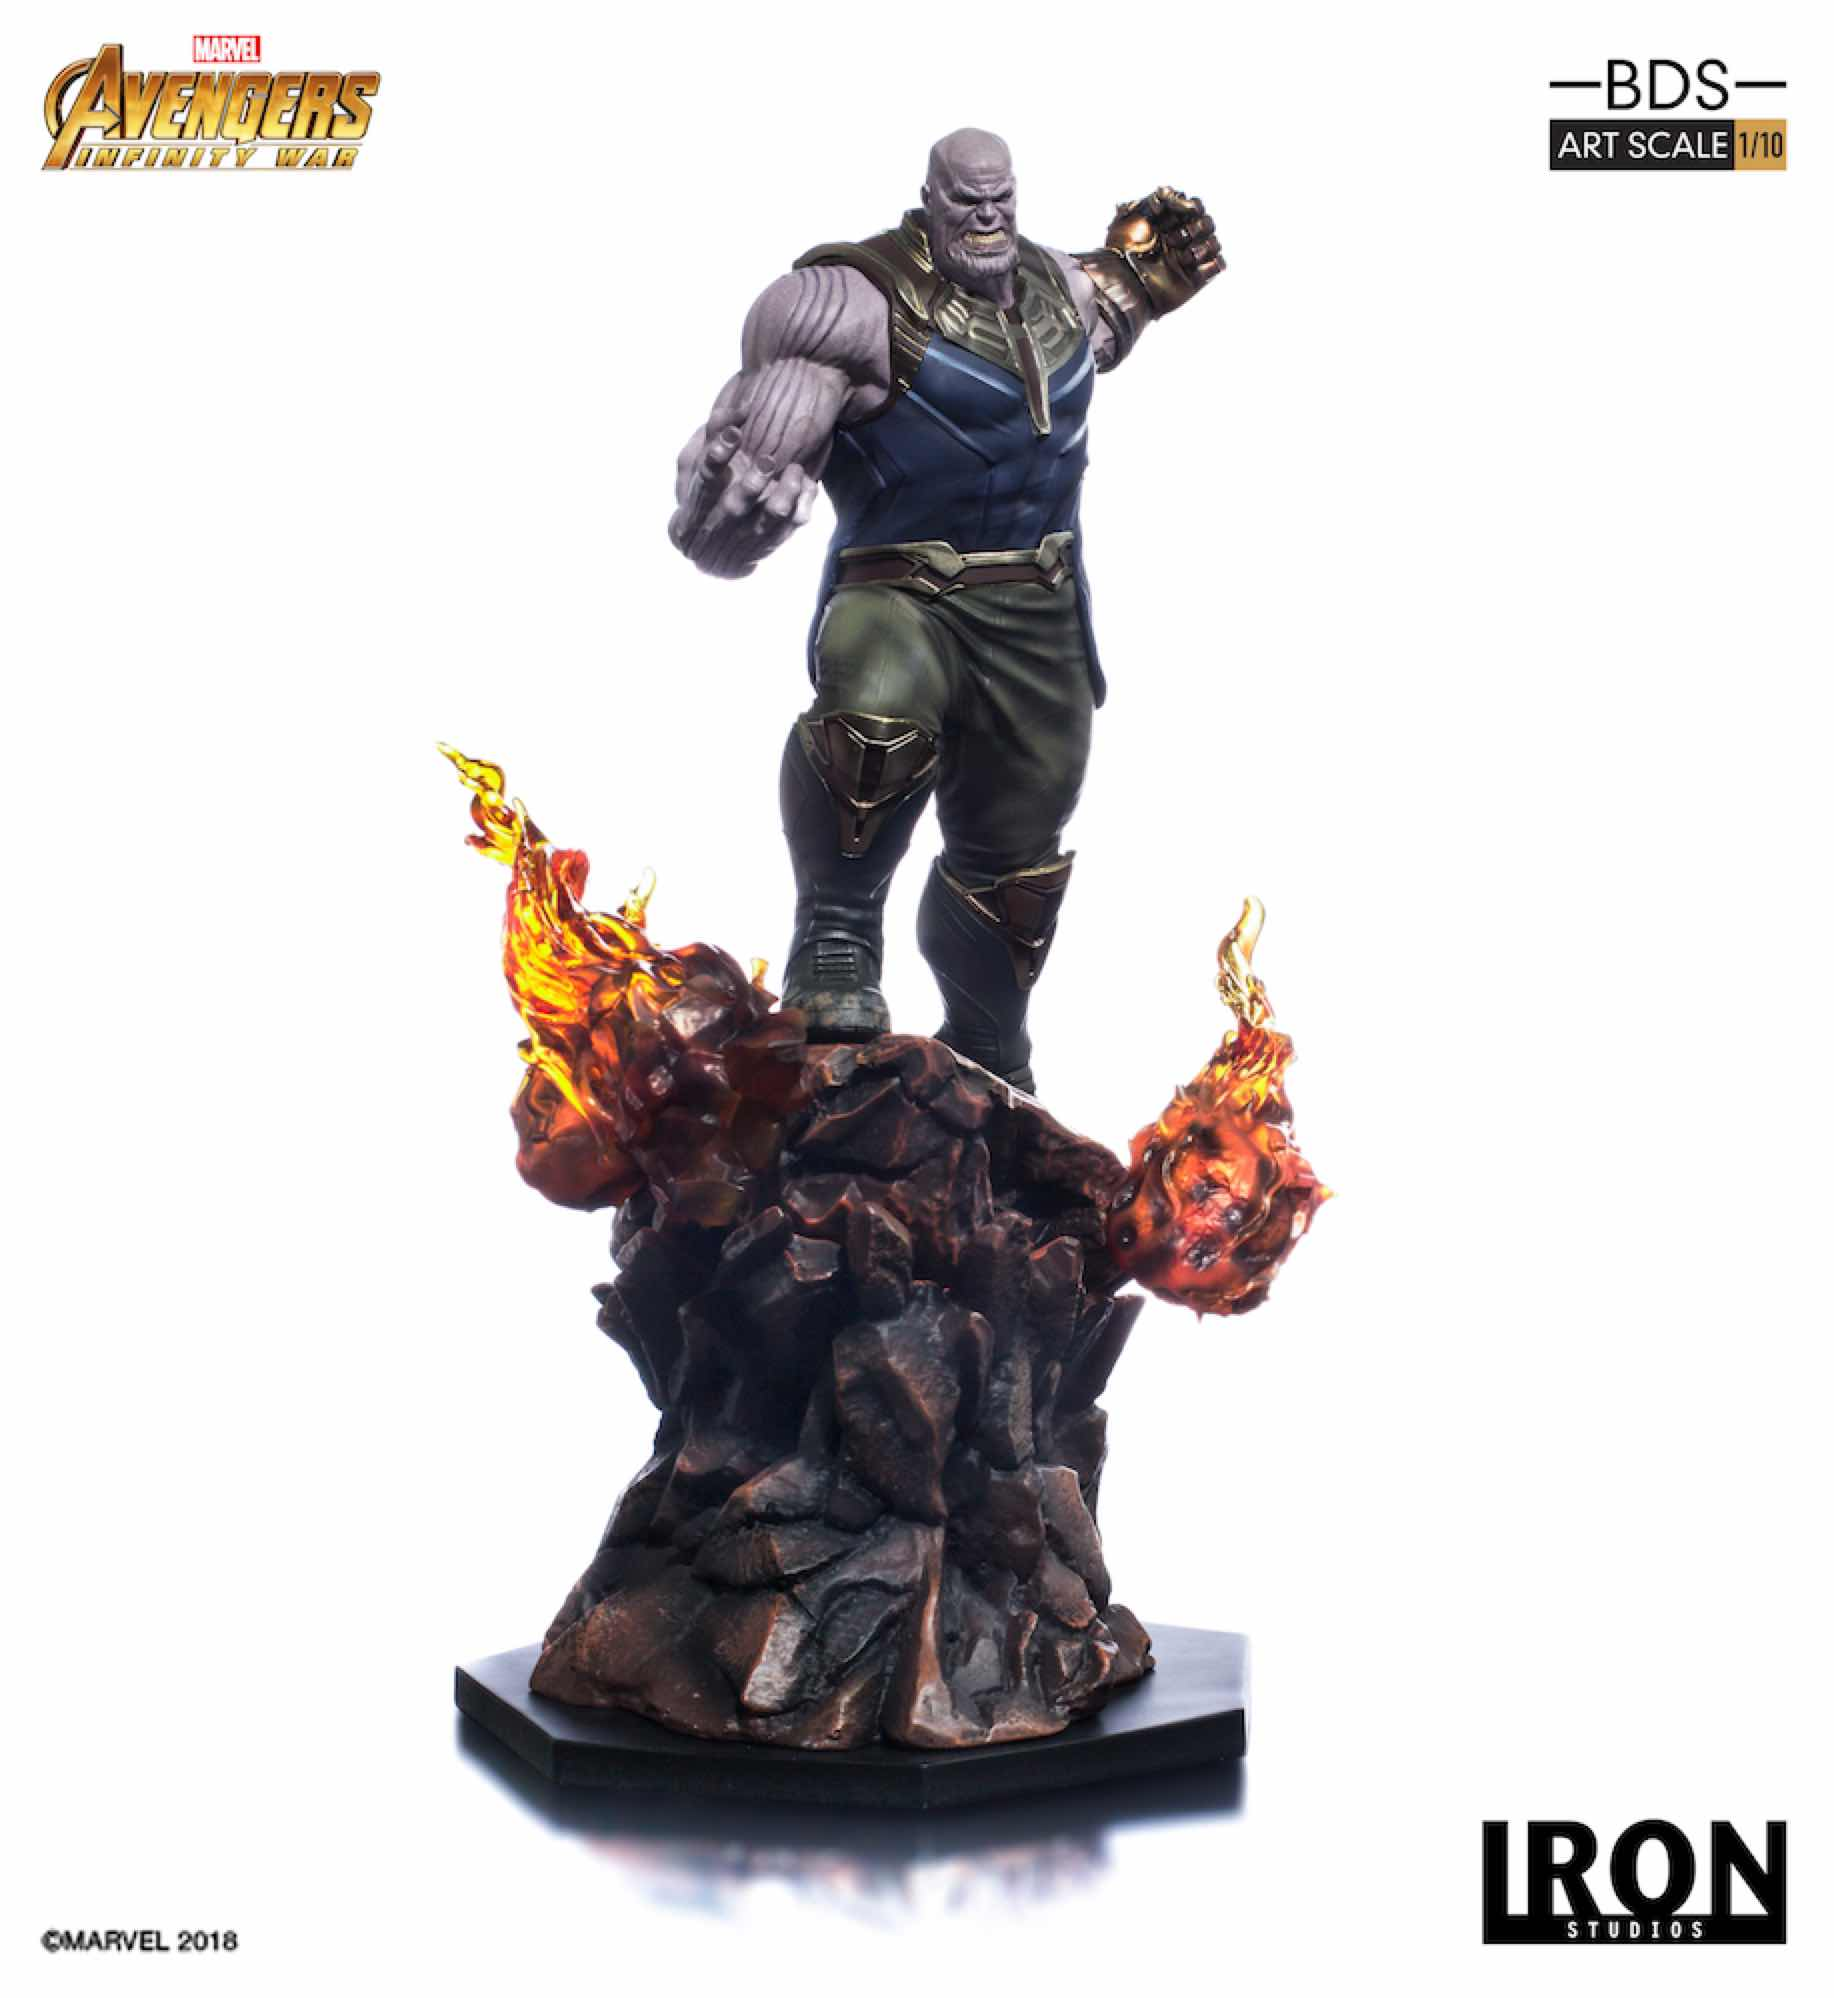 THANOS FIG 35 CM AVENGERS INFINITY WAR IRON STUDIOS BDS 1/10 ART SCALE